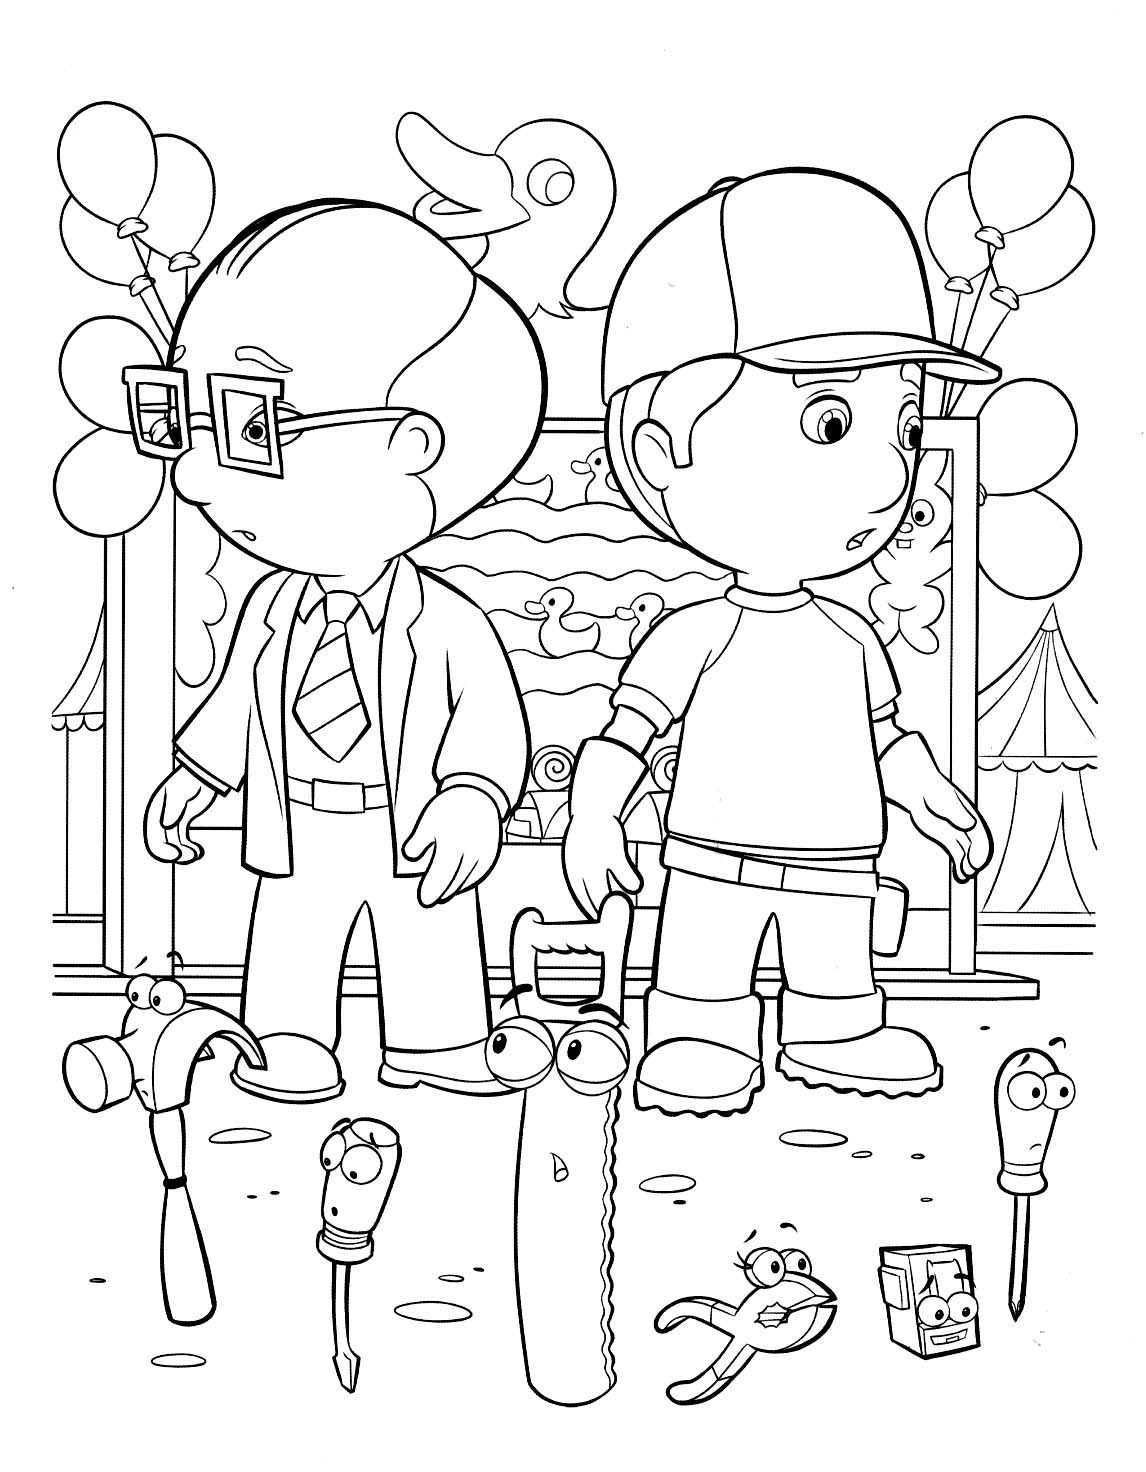 Beautiful Handy Manny coloring page to print and color